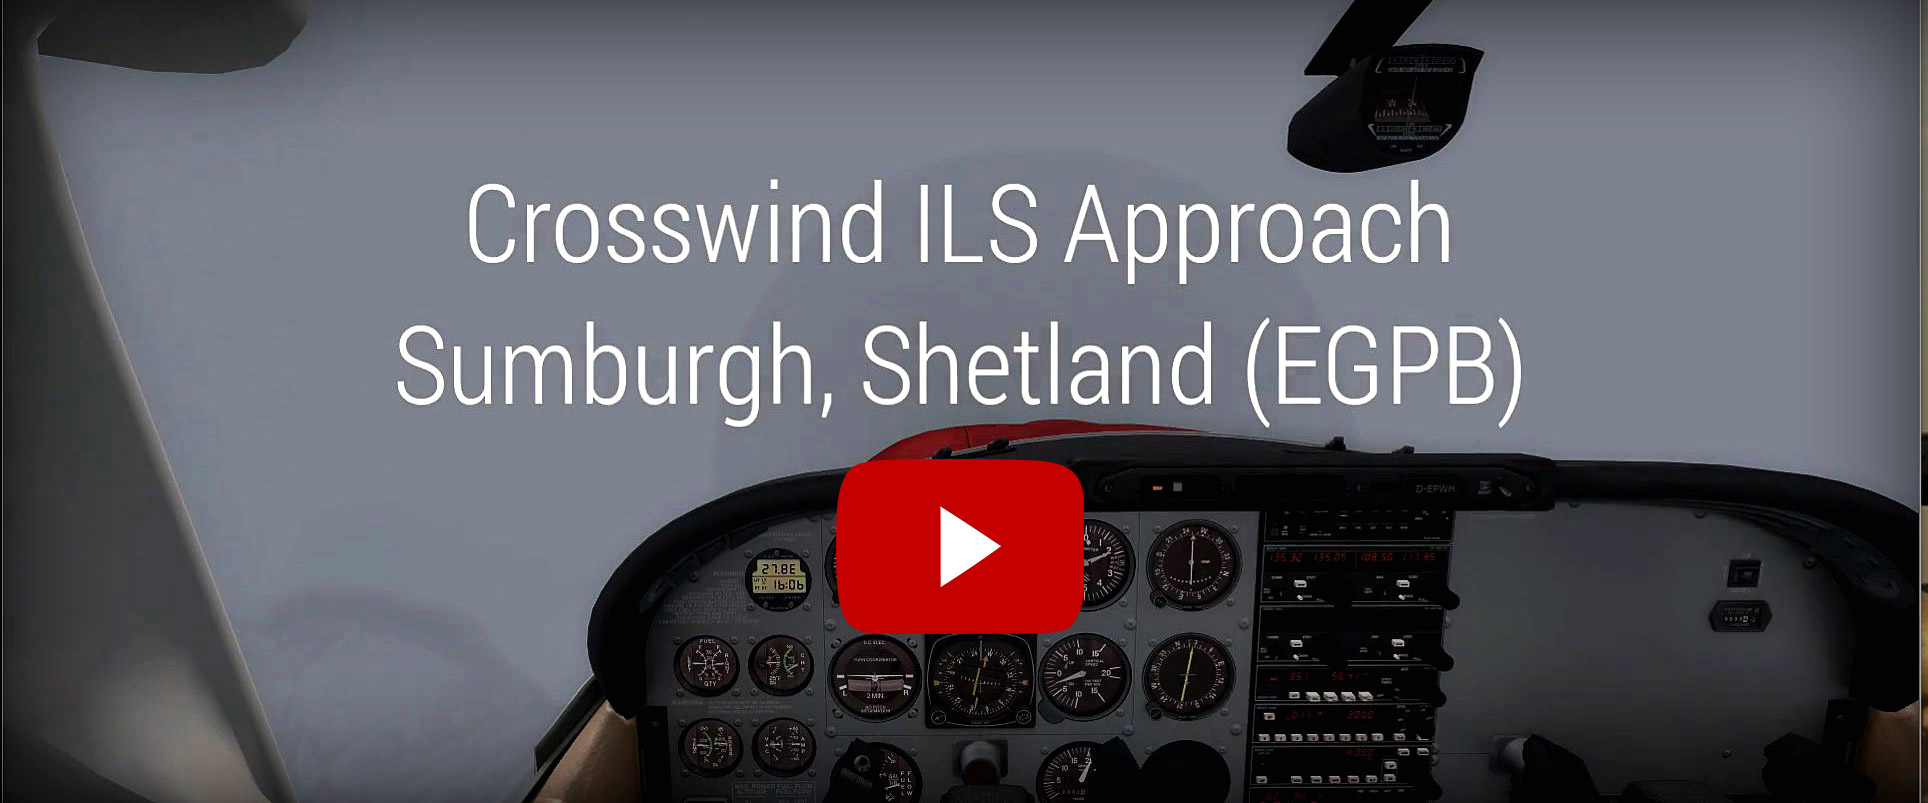 ILS Approach and Crosswind Landing in Sumburgh